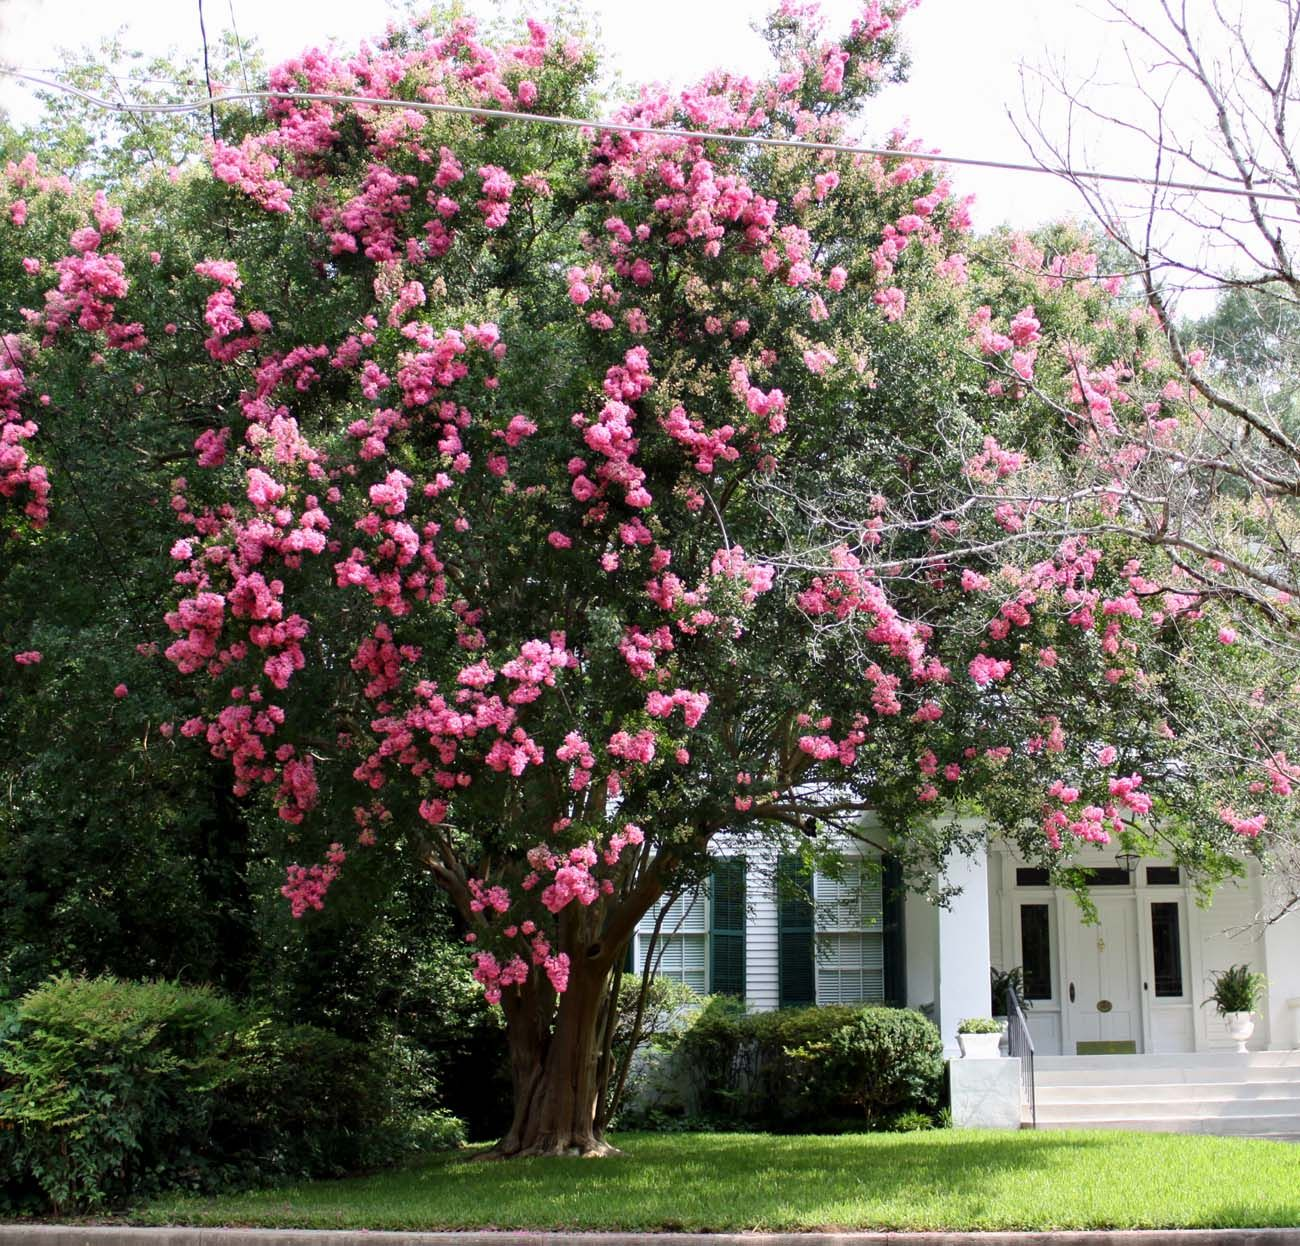 ms flowering trees | Flowers and plants that attract butterflies ...